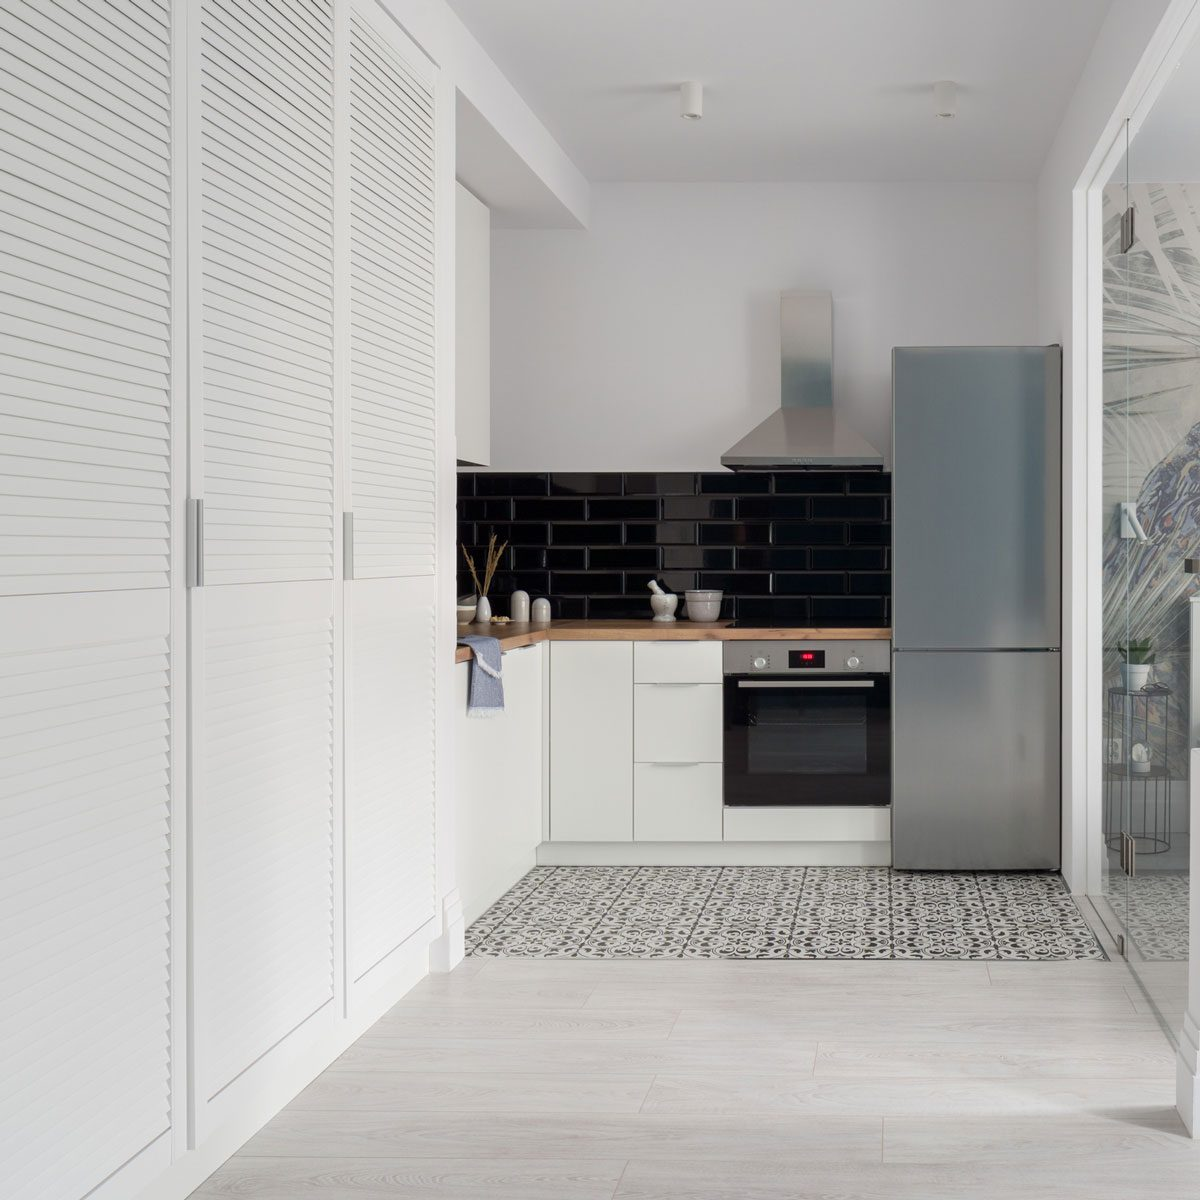 Small kitchen with a patterned floor